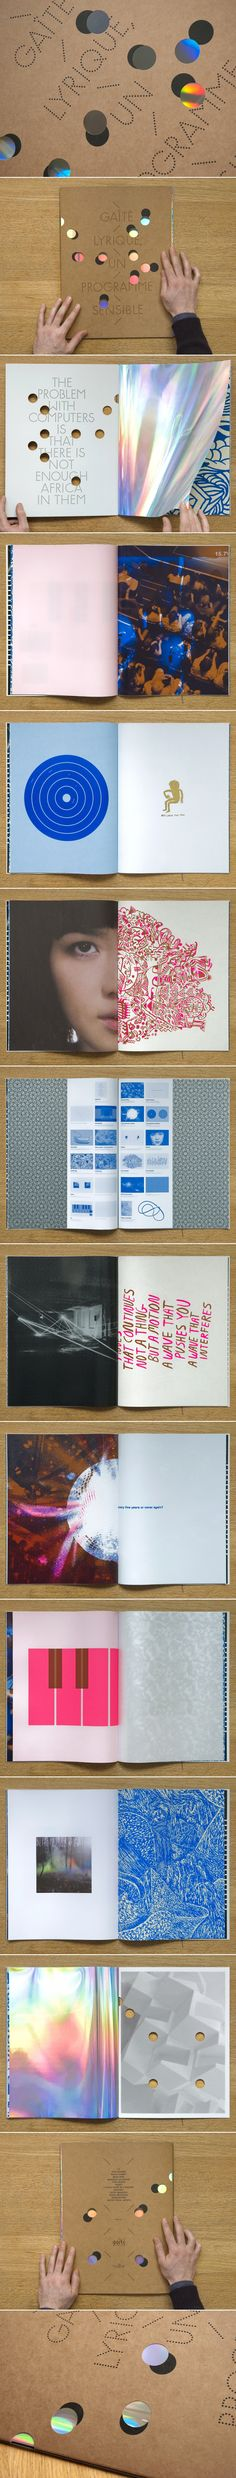 We design some sort of a book for the opening of Gaîté Lyrique, center for digital cultures in Paris. This book consists in 20 posters composed from material given by artists programmed for the Opening. The posters are folded and binded together with a rubber band, combining 2 half-posters. You can remove the rubber band, put the posters on your wall or re-arrange them in a newt order, creating a new book.